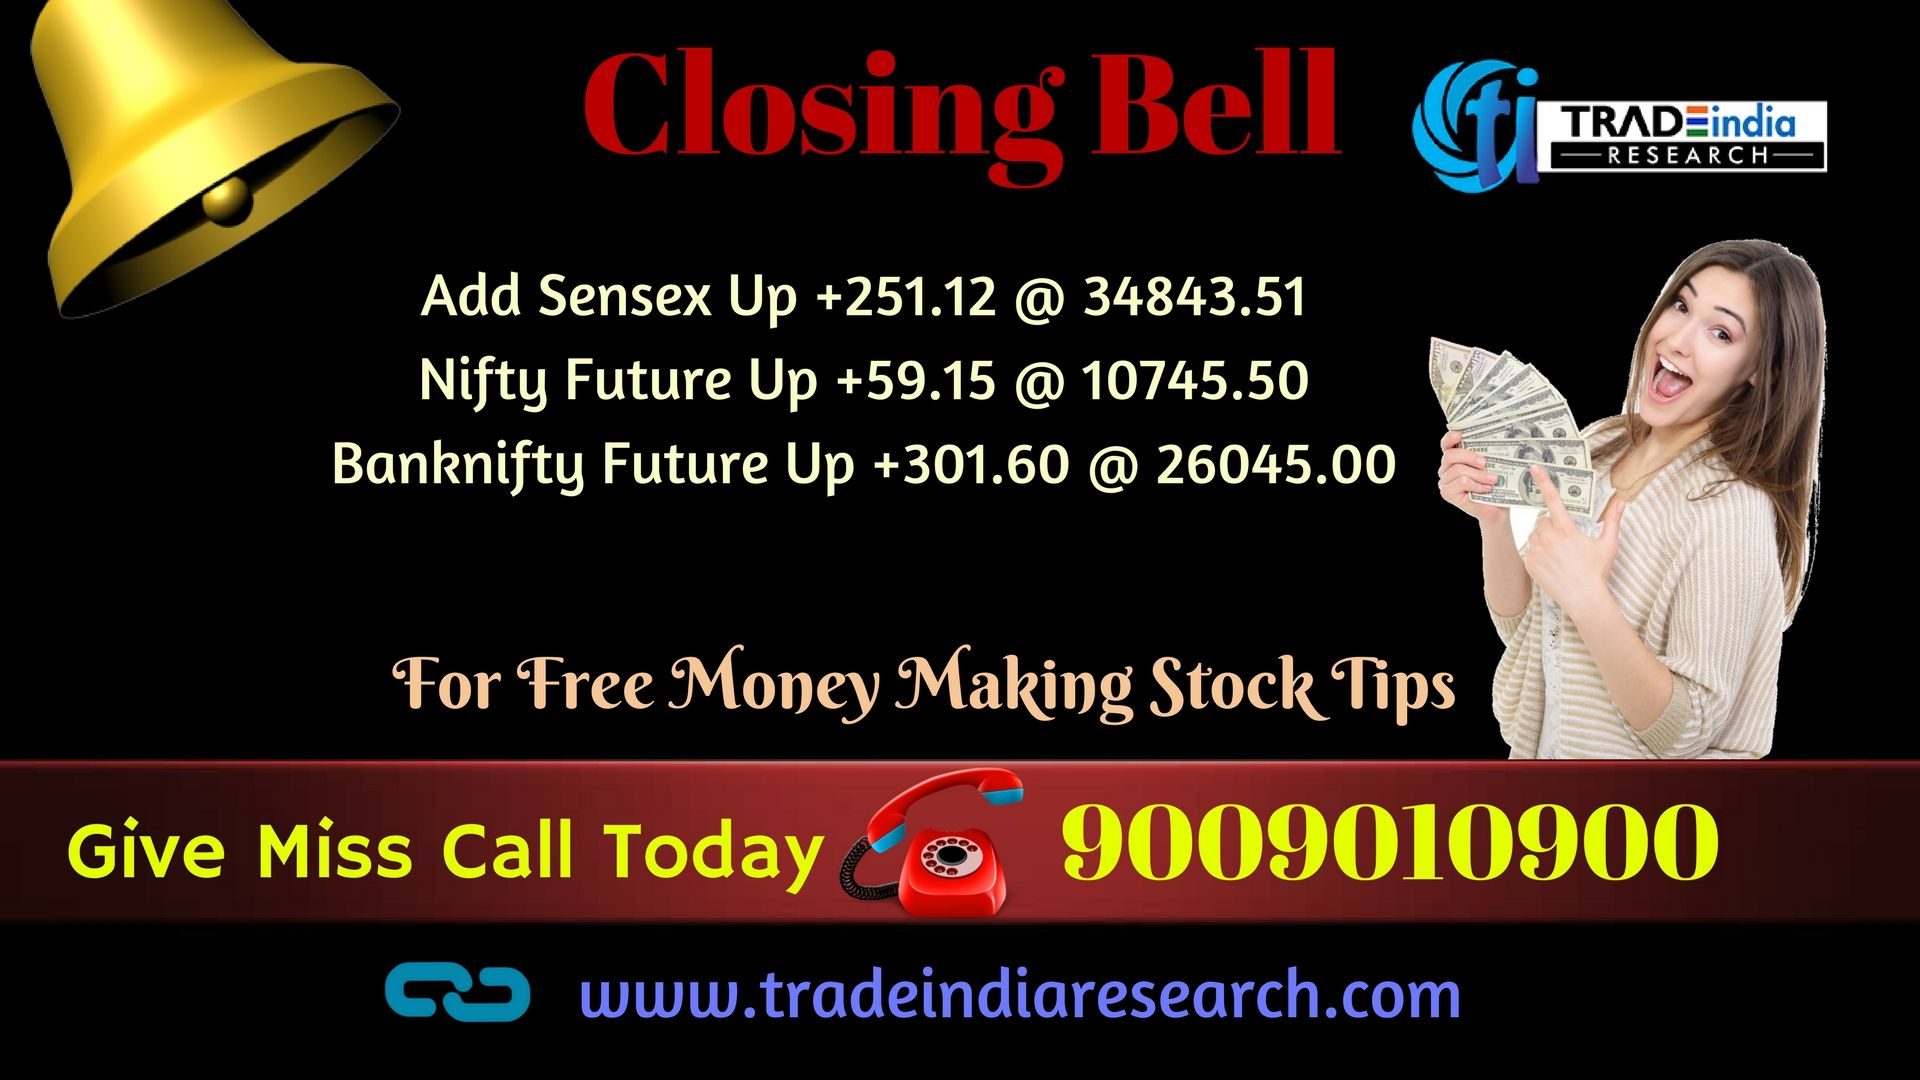 Stock Market Closing bell equity Commodity stocks